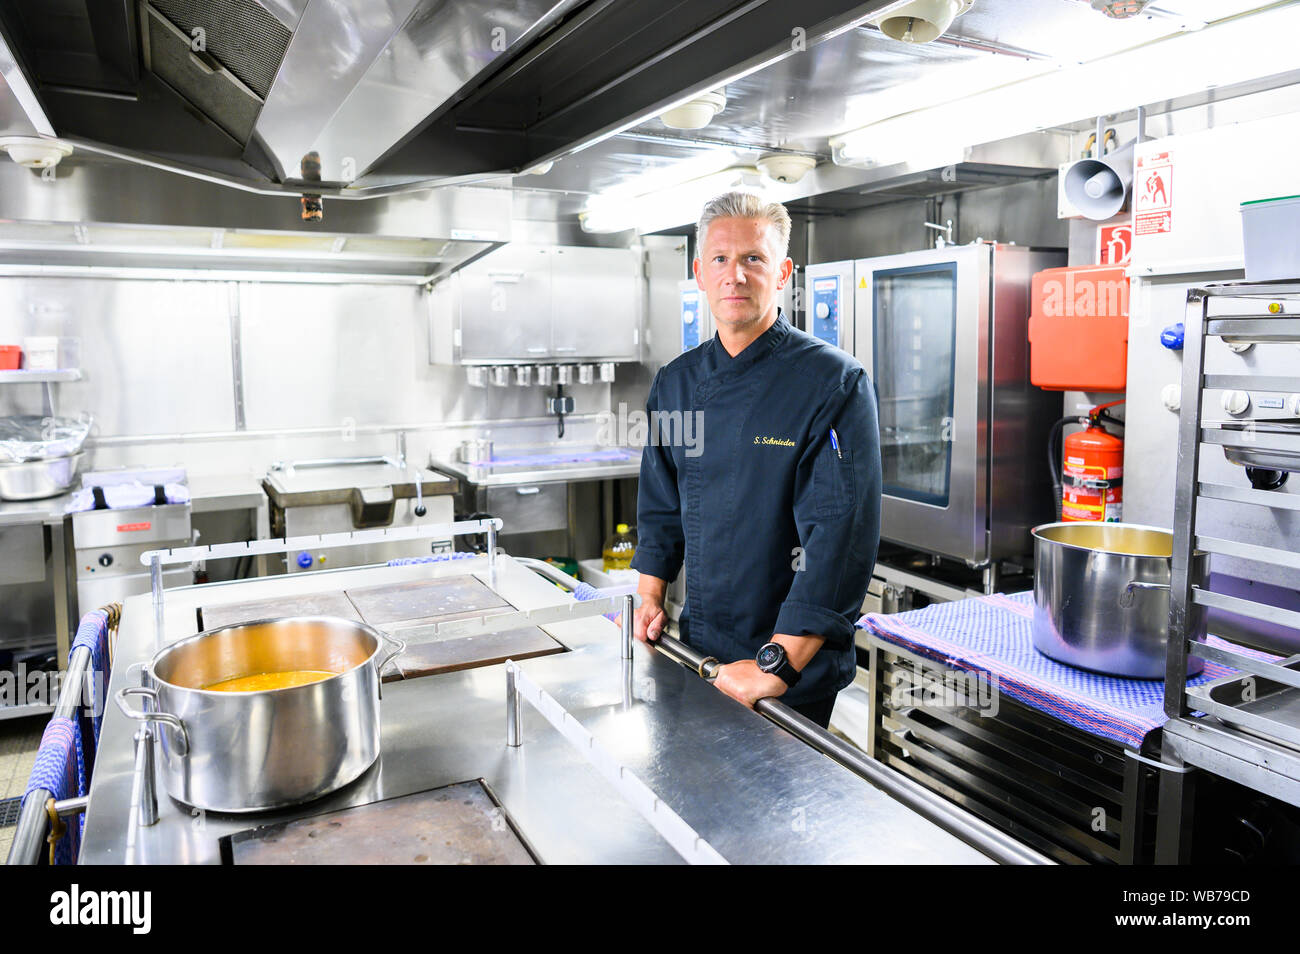 Ships Kitchen Stock Photos & Ships Kitchen Stock Images - Alamy